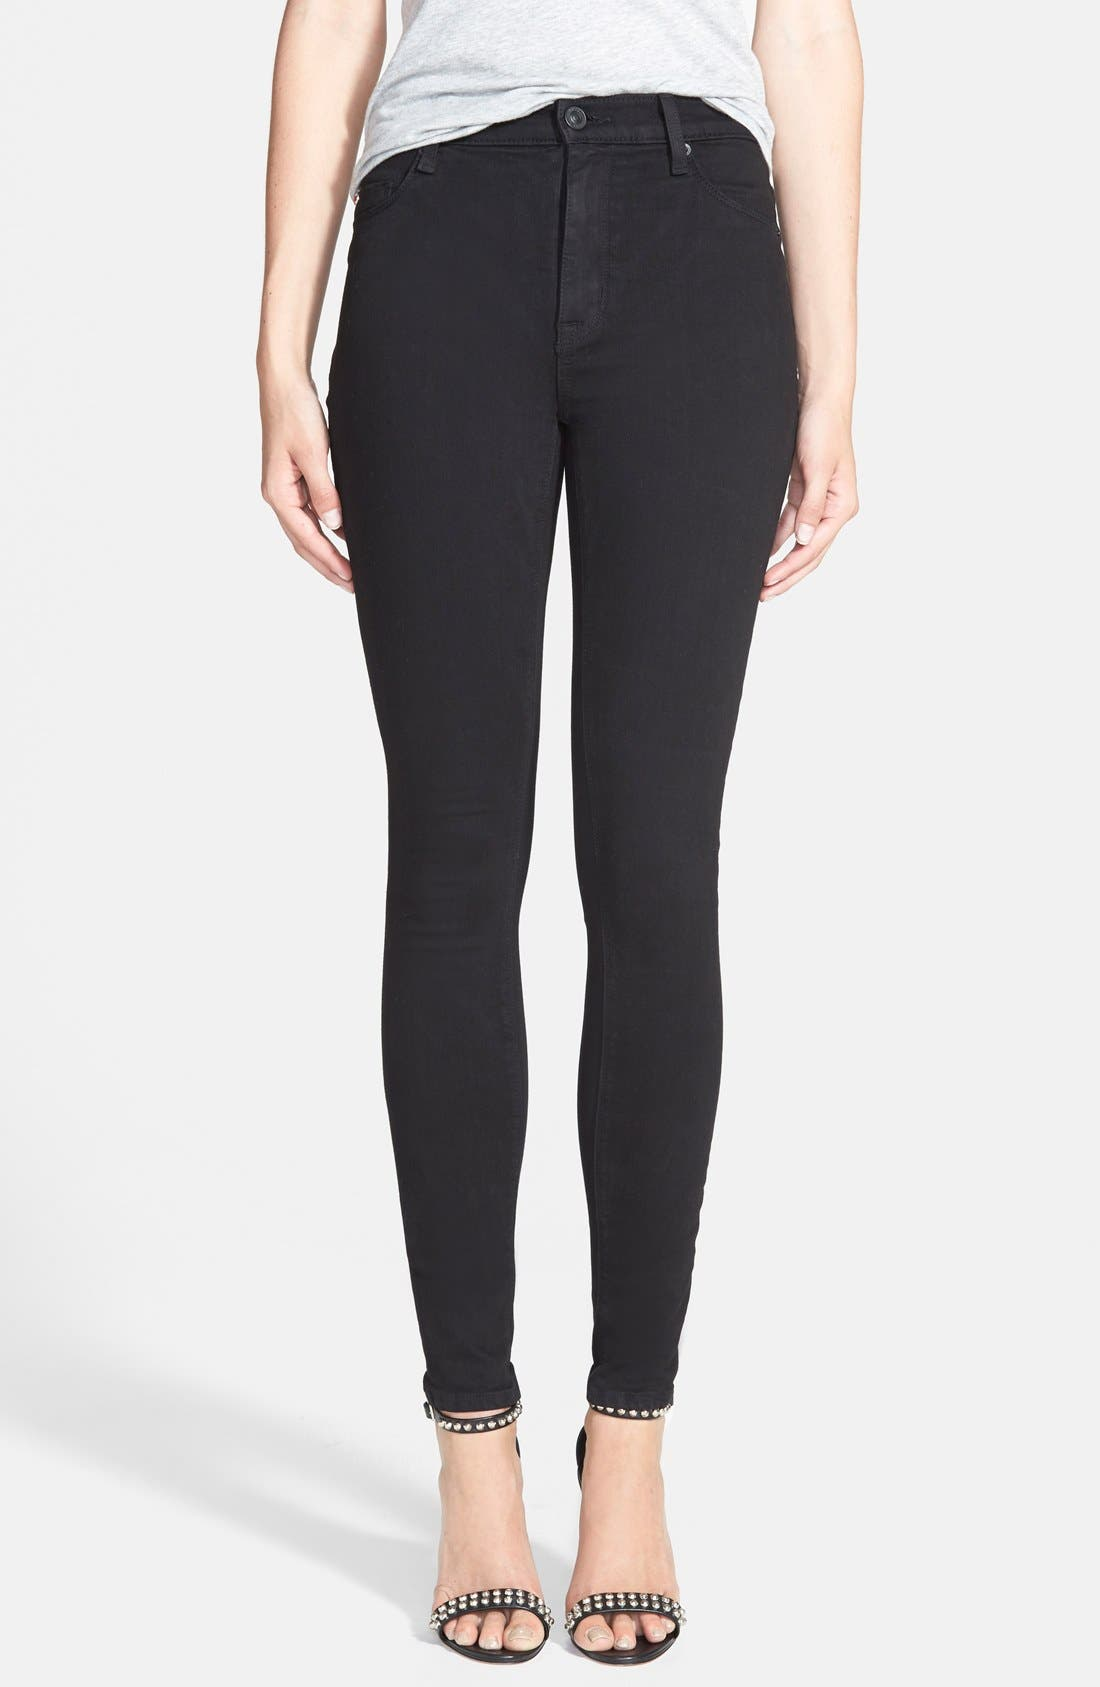 Barbara High Waist Skinny Jeans,                         Main,                         color, Black